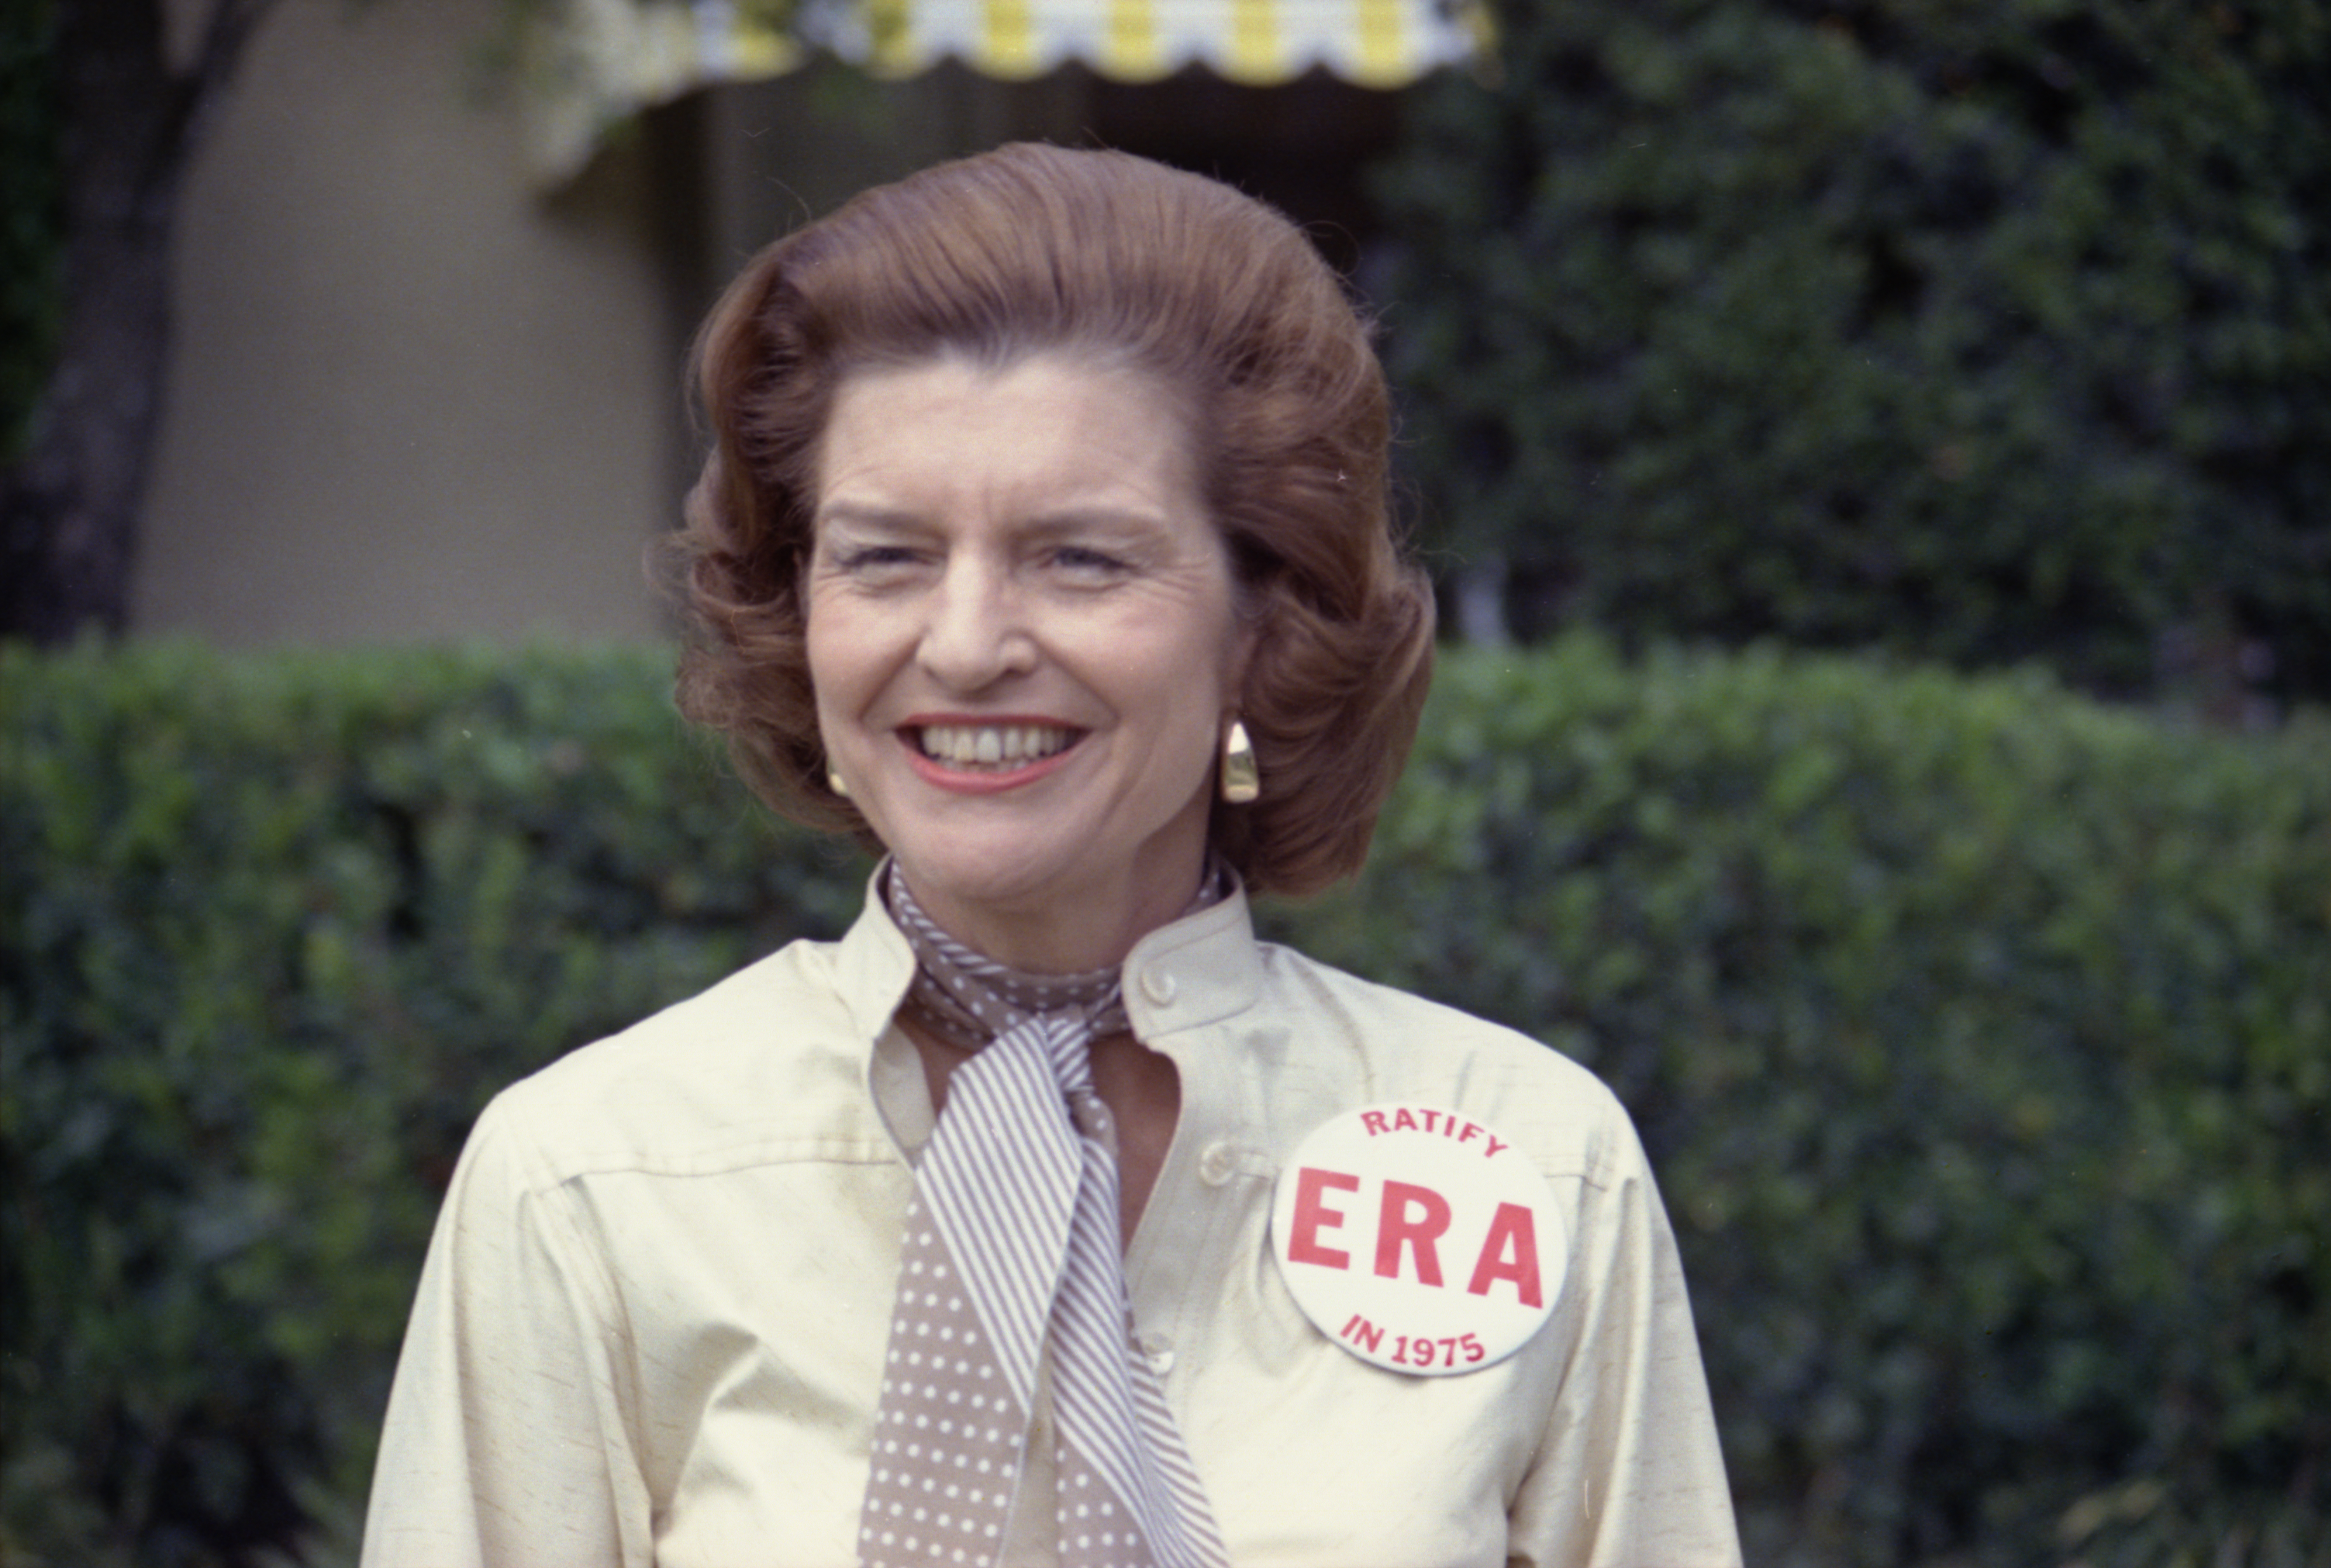 Betty Ford with ERA pin